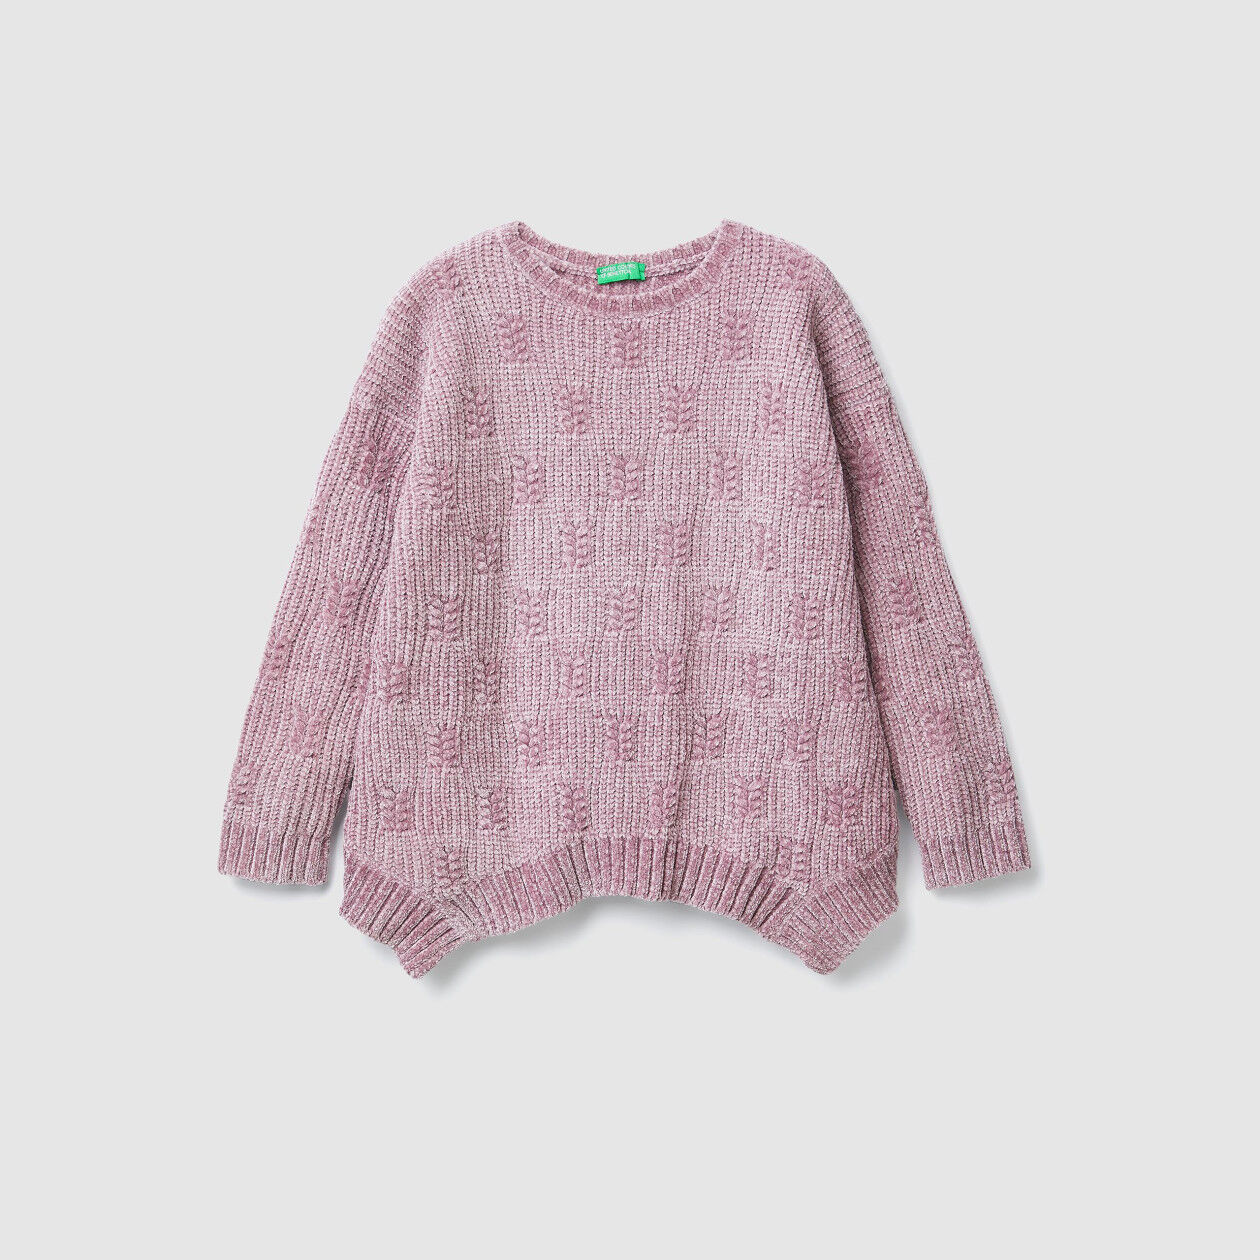 Uneven chenille sweater